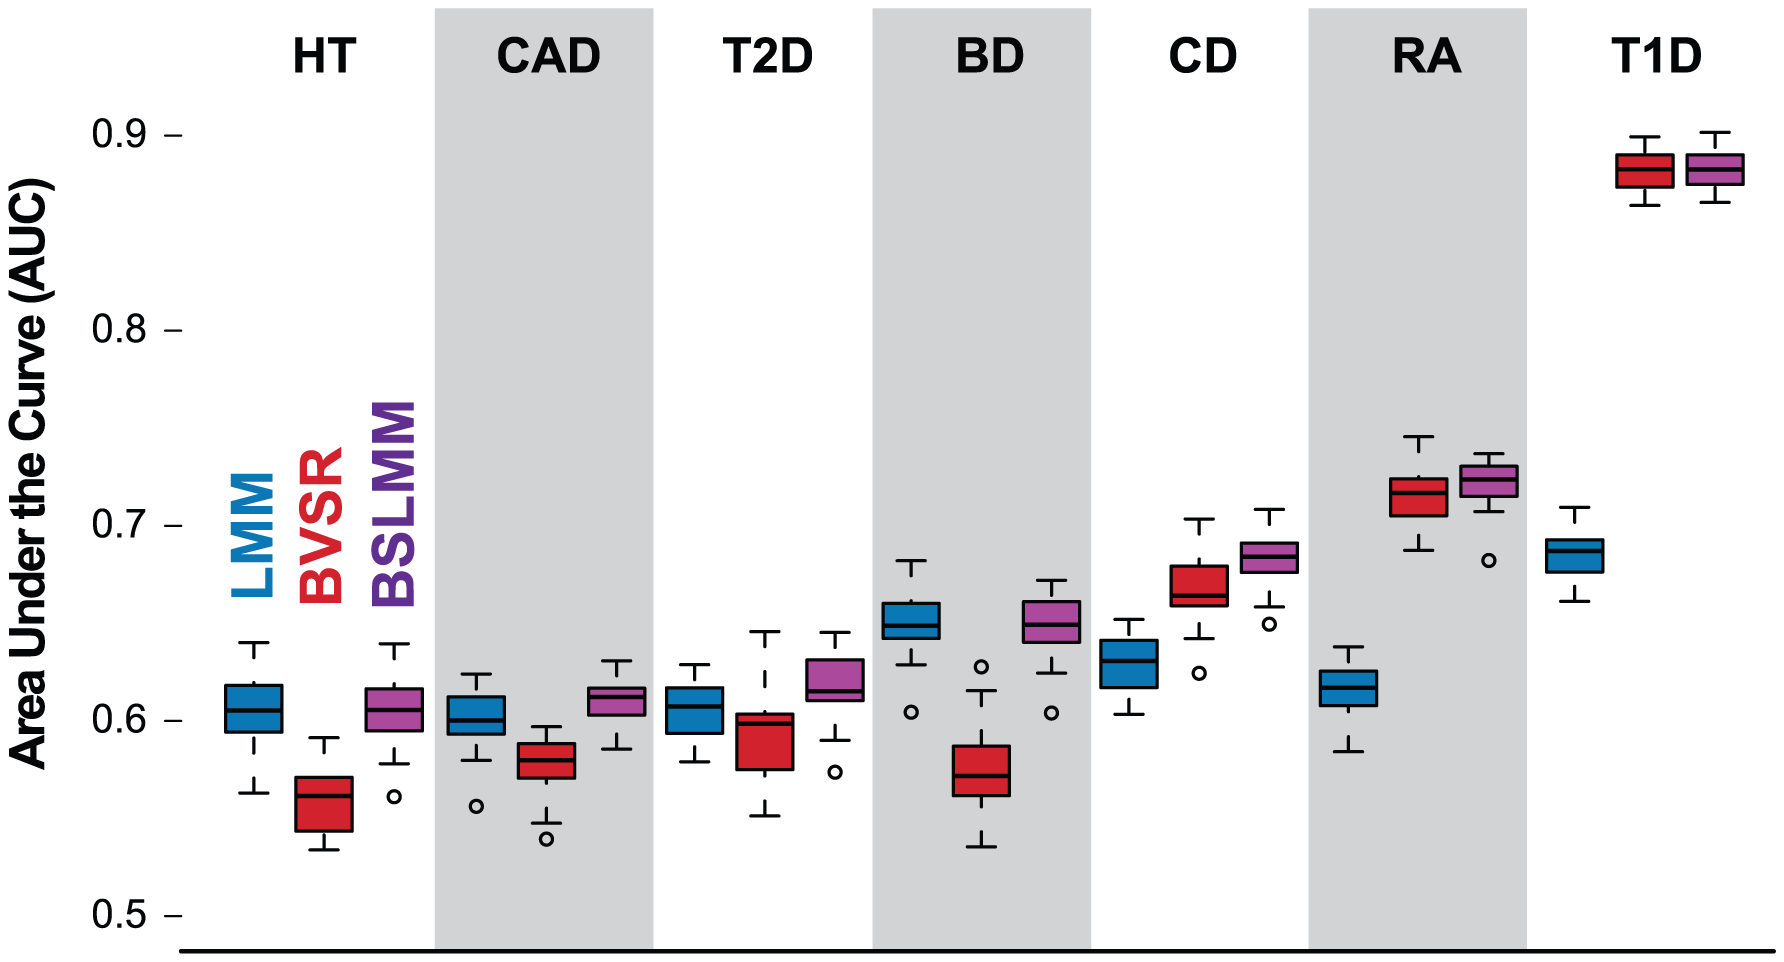 Comparison of prediction performance of LMM (blue), BVSR (red), and BSLMM (purple) for seven diseases in the WTCCC dataset.